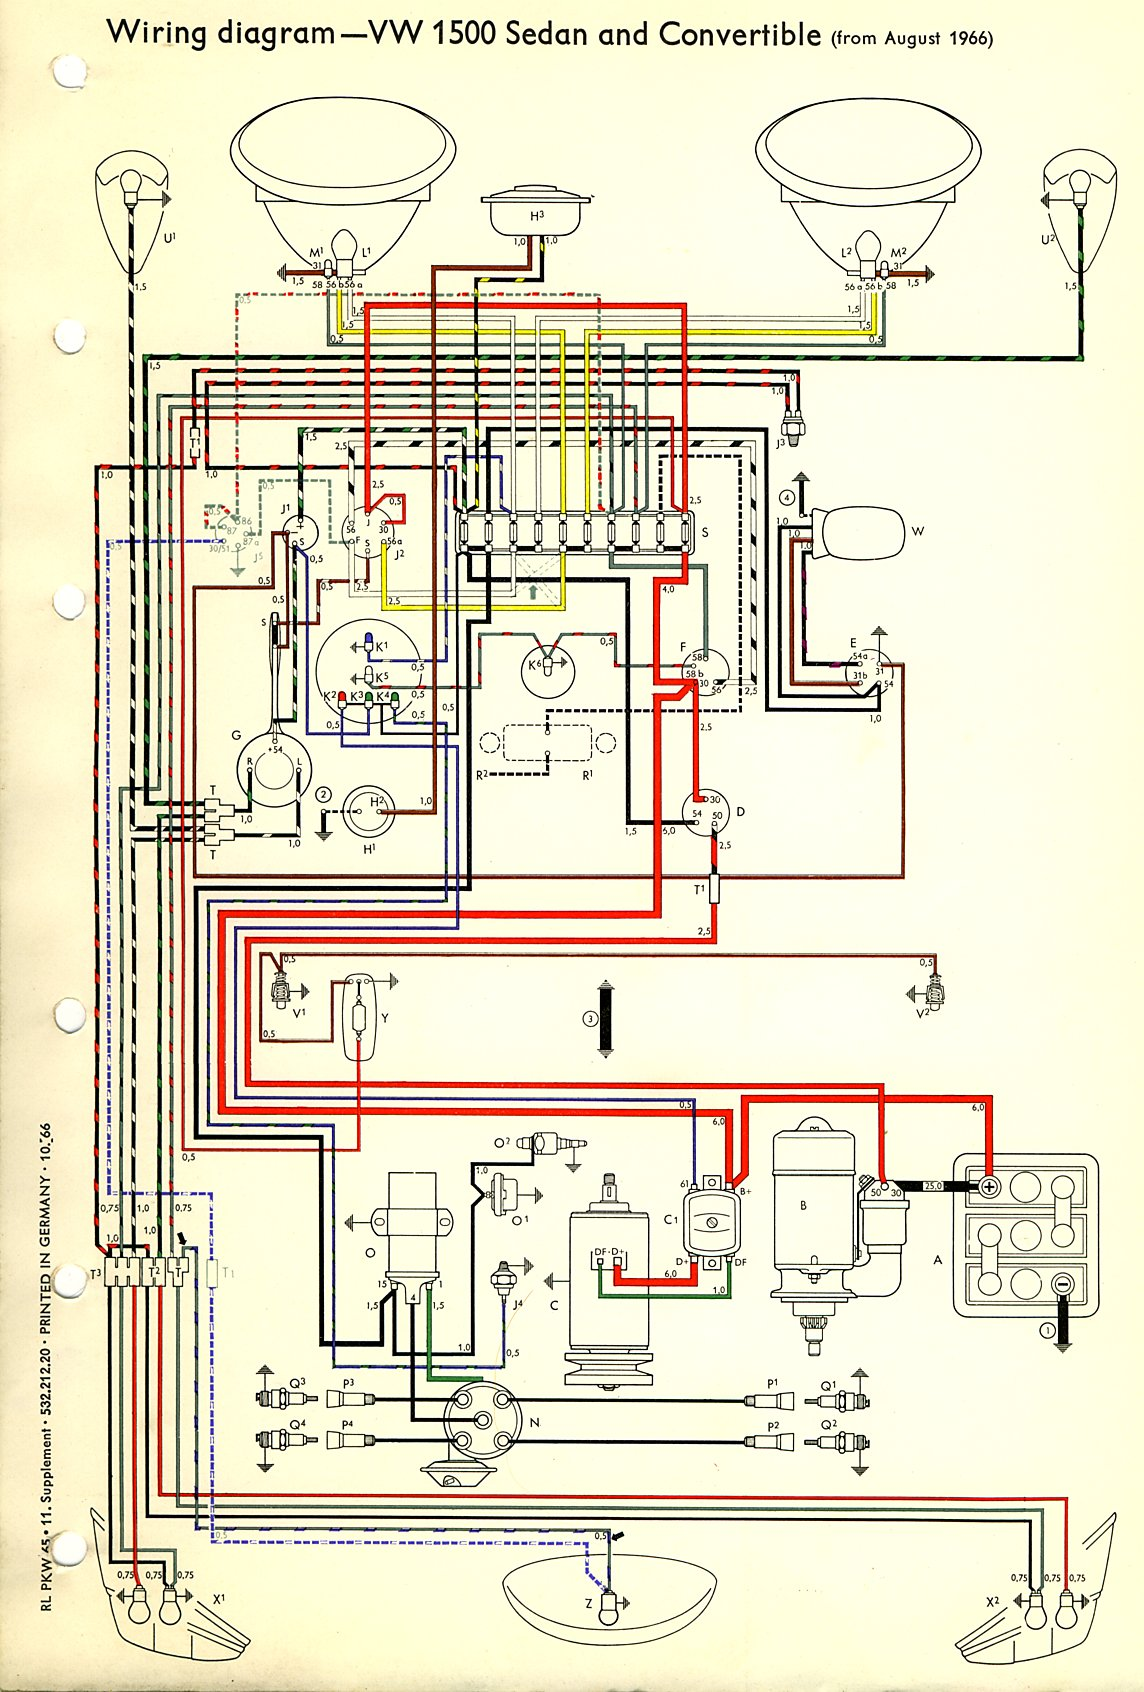 1967 beetle wiring diagram thegoldenbug com 69 VW Generator Wiring Diagram 1969 vw bug engine wiring diagram